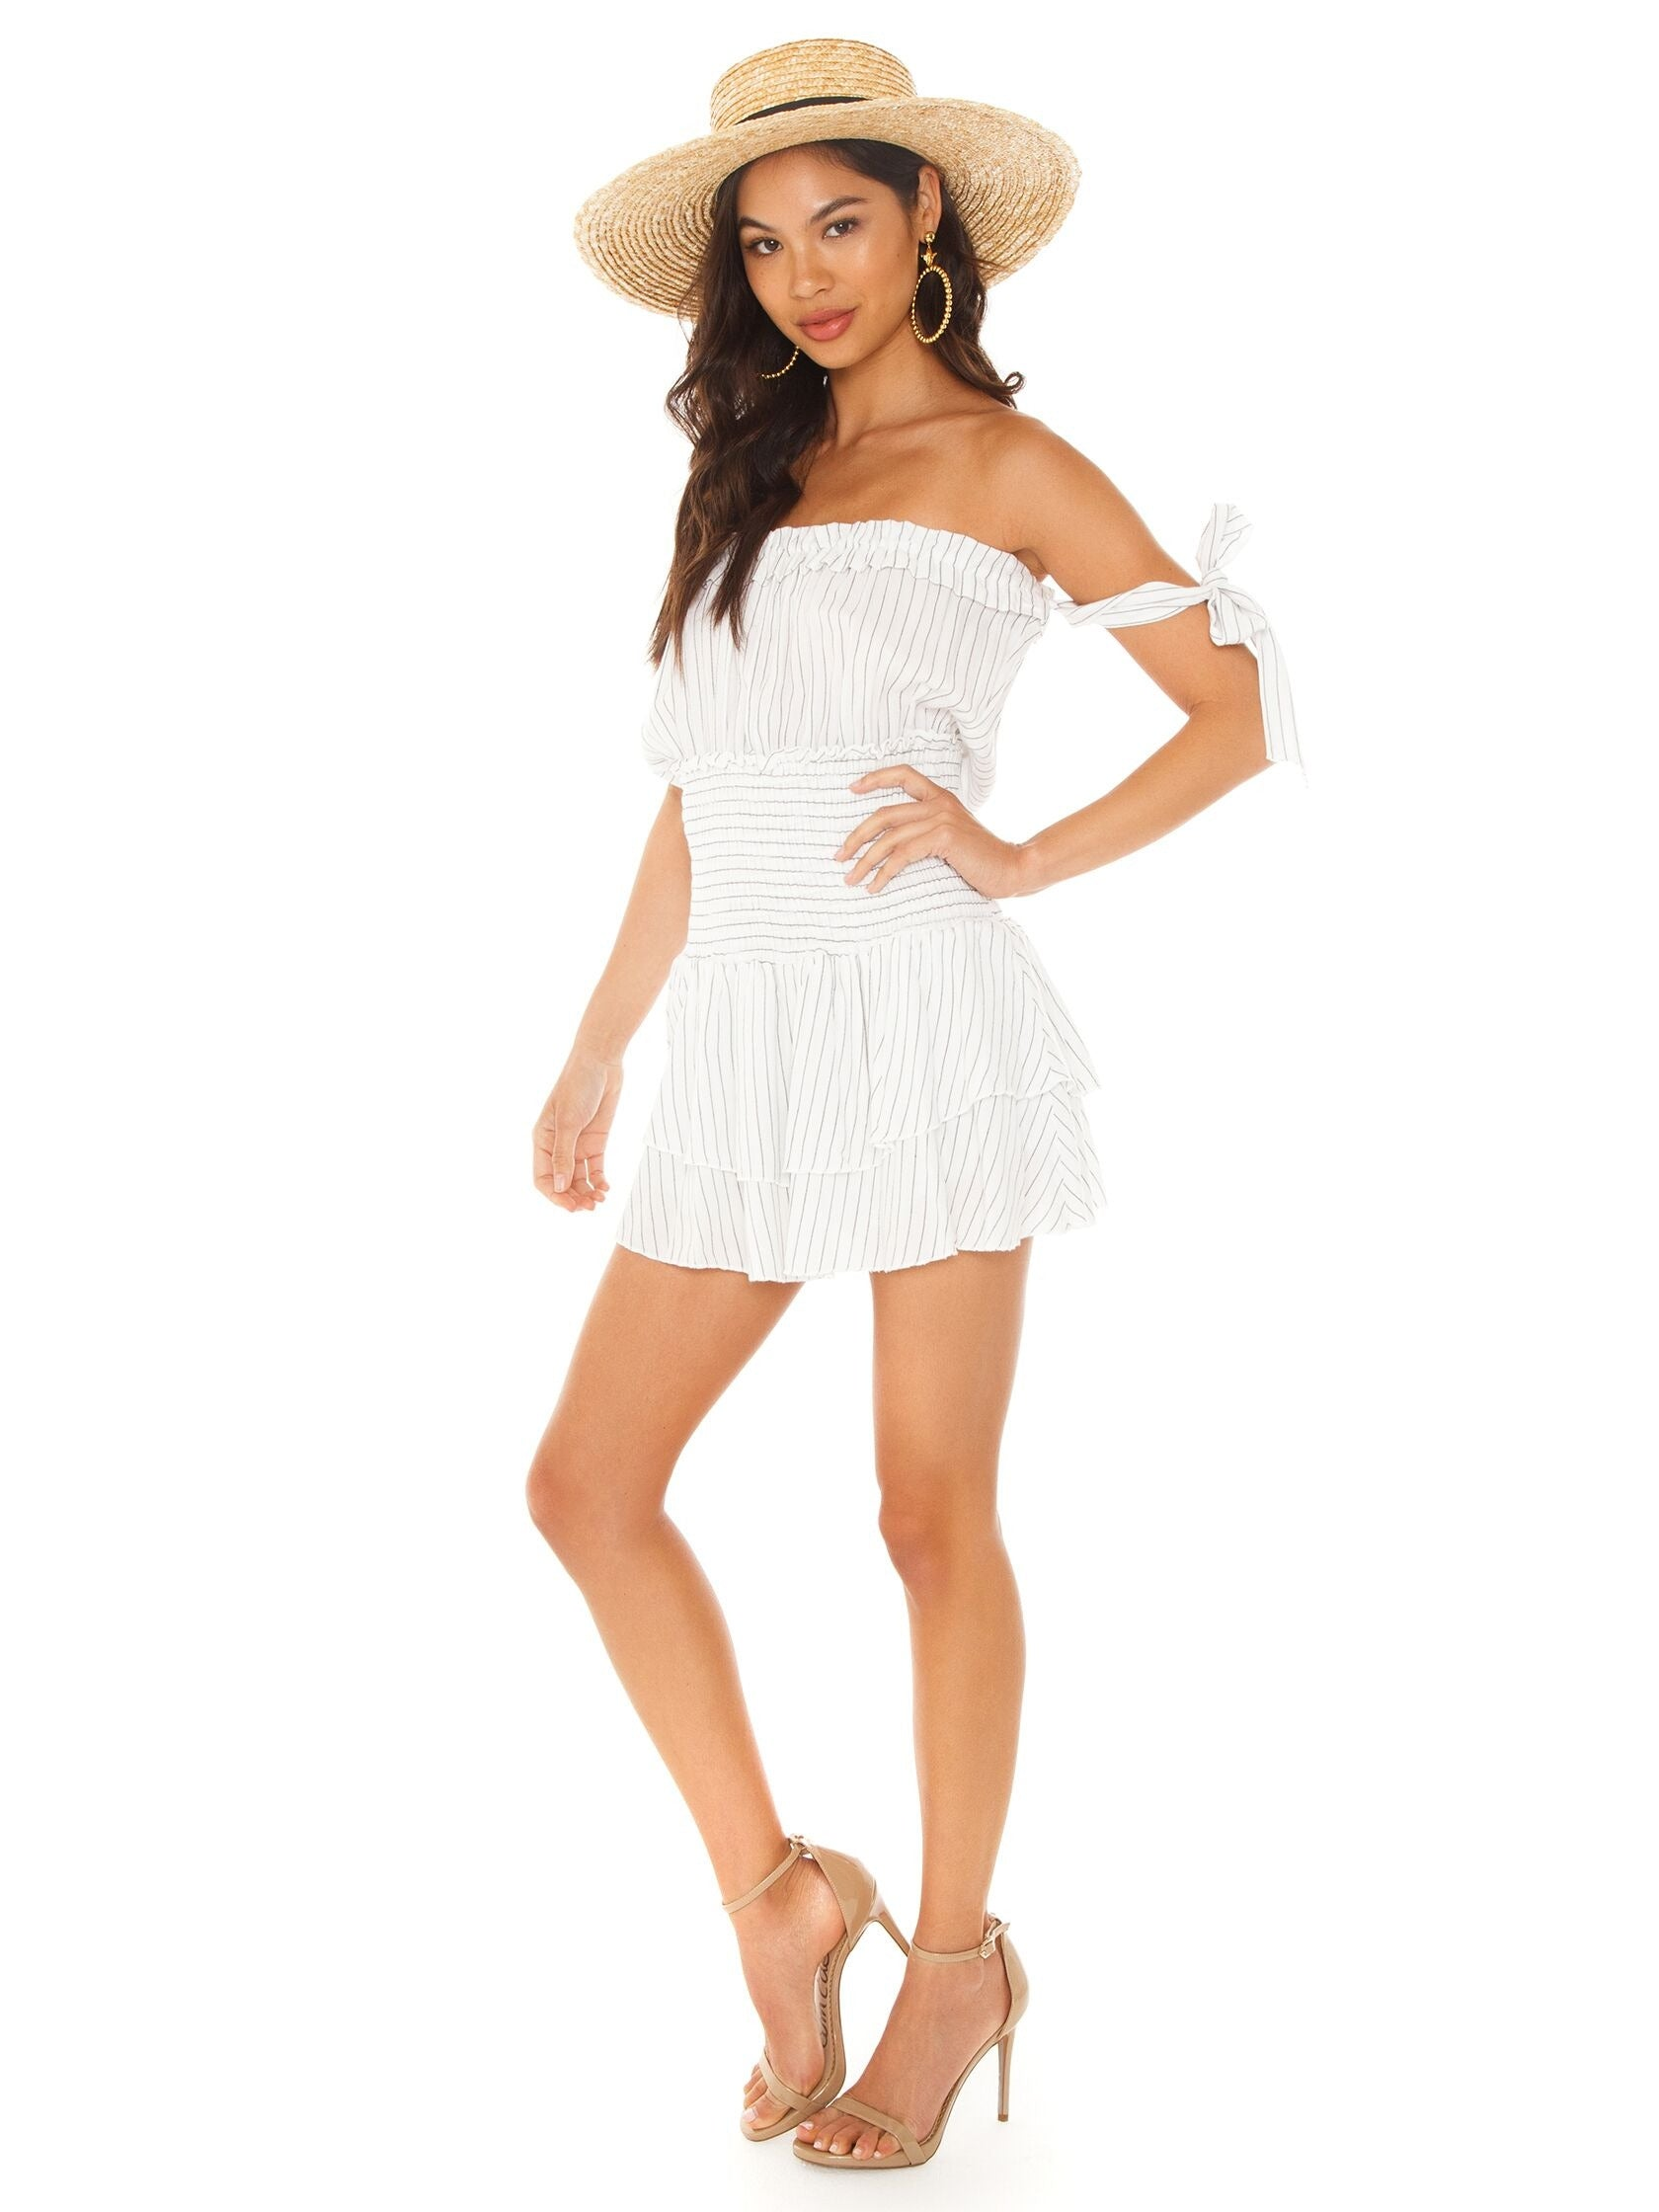 Woman wearing a romper rental from Blue Life called Ballerina Romper